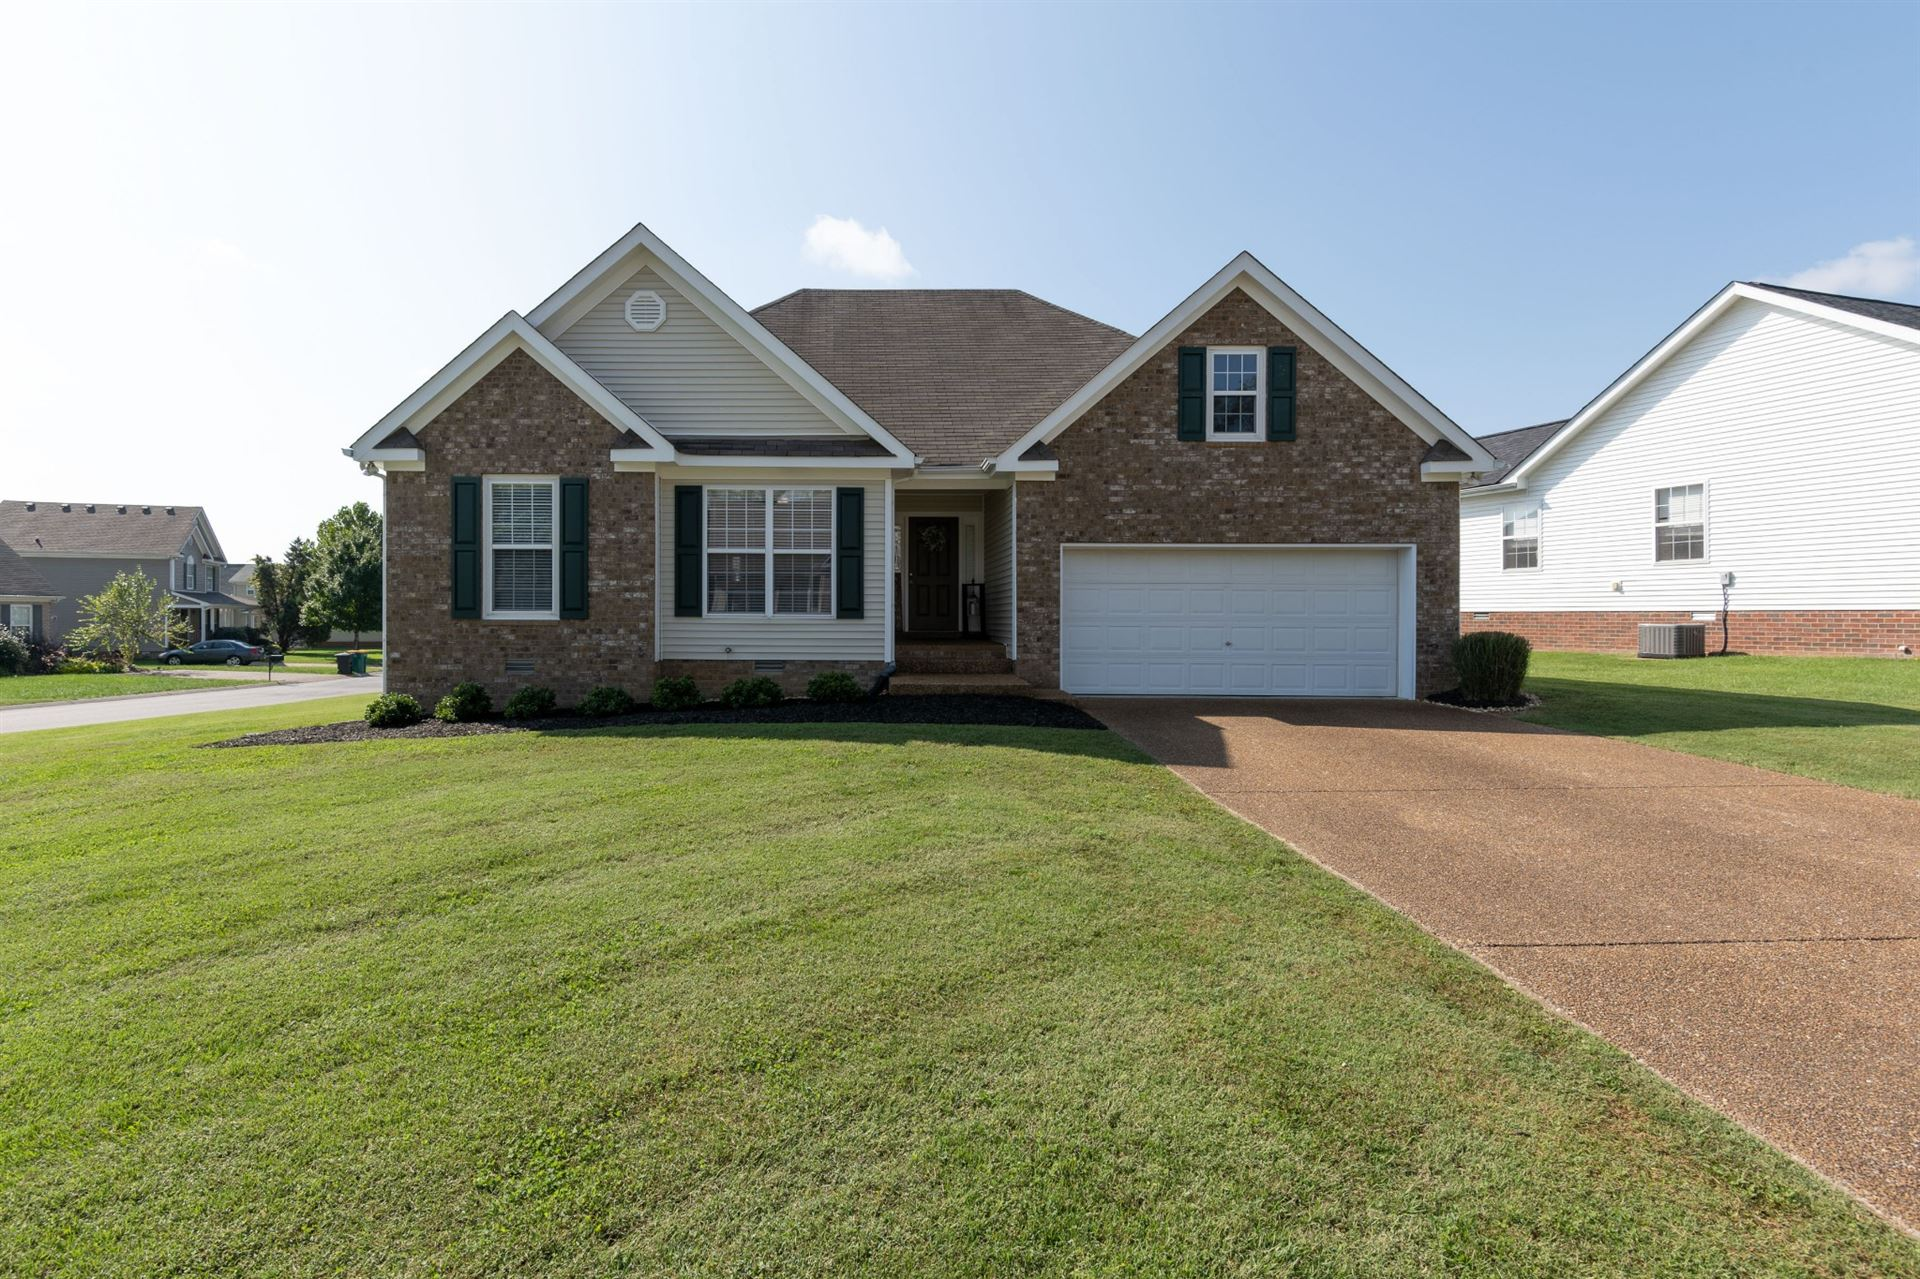 Photo of 1003 Persimmon Dr, Spring Hill, TN 37174 (MLS # 2303161)